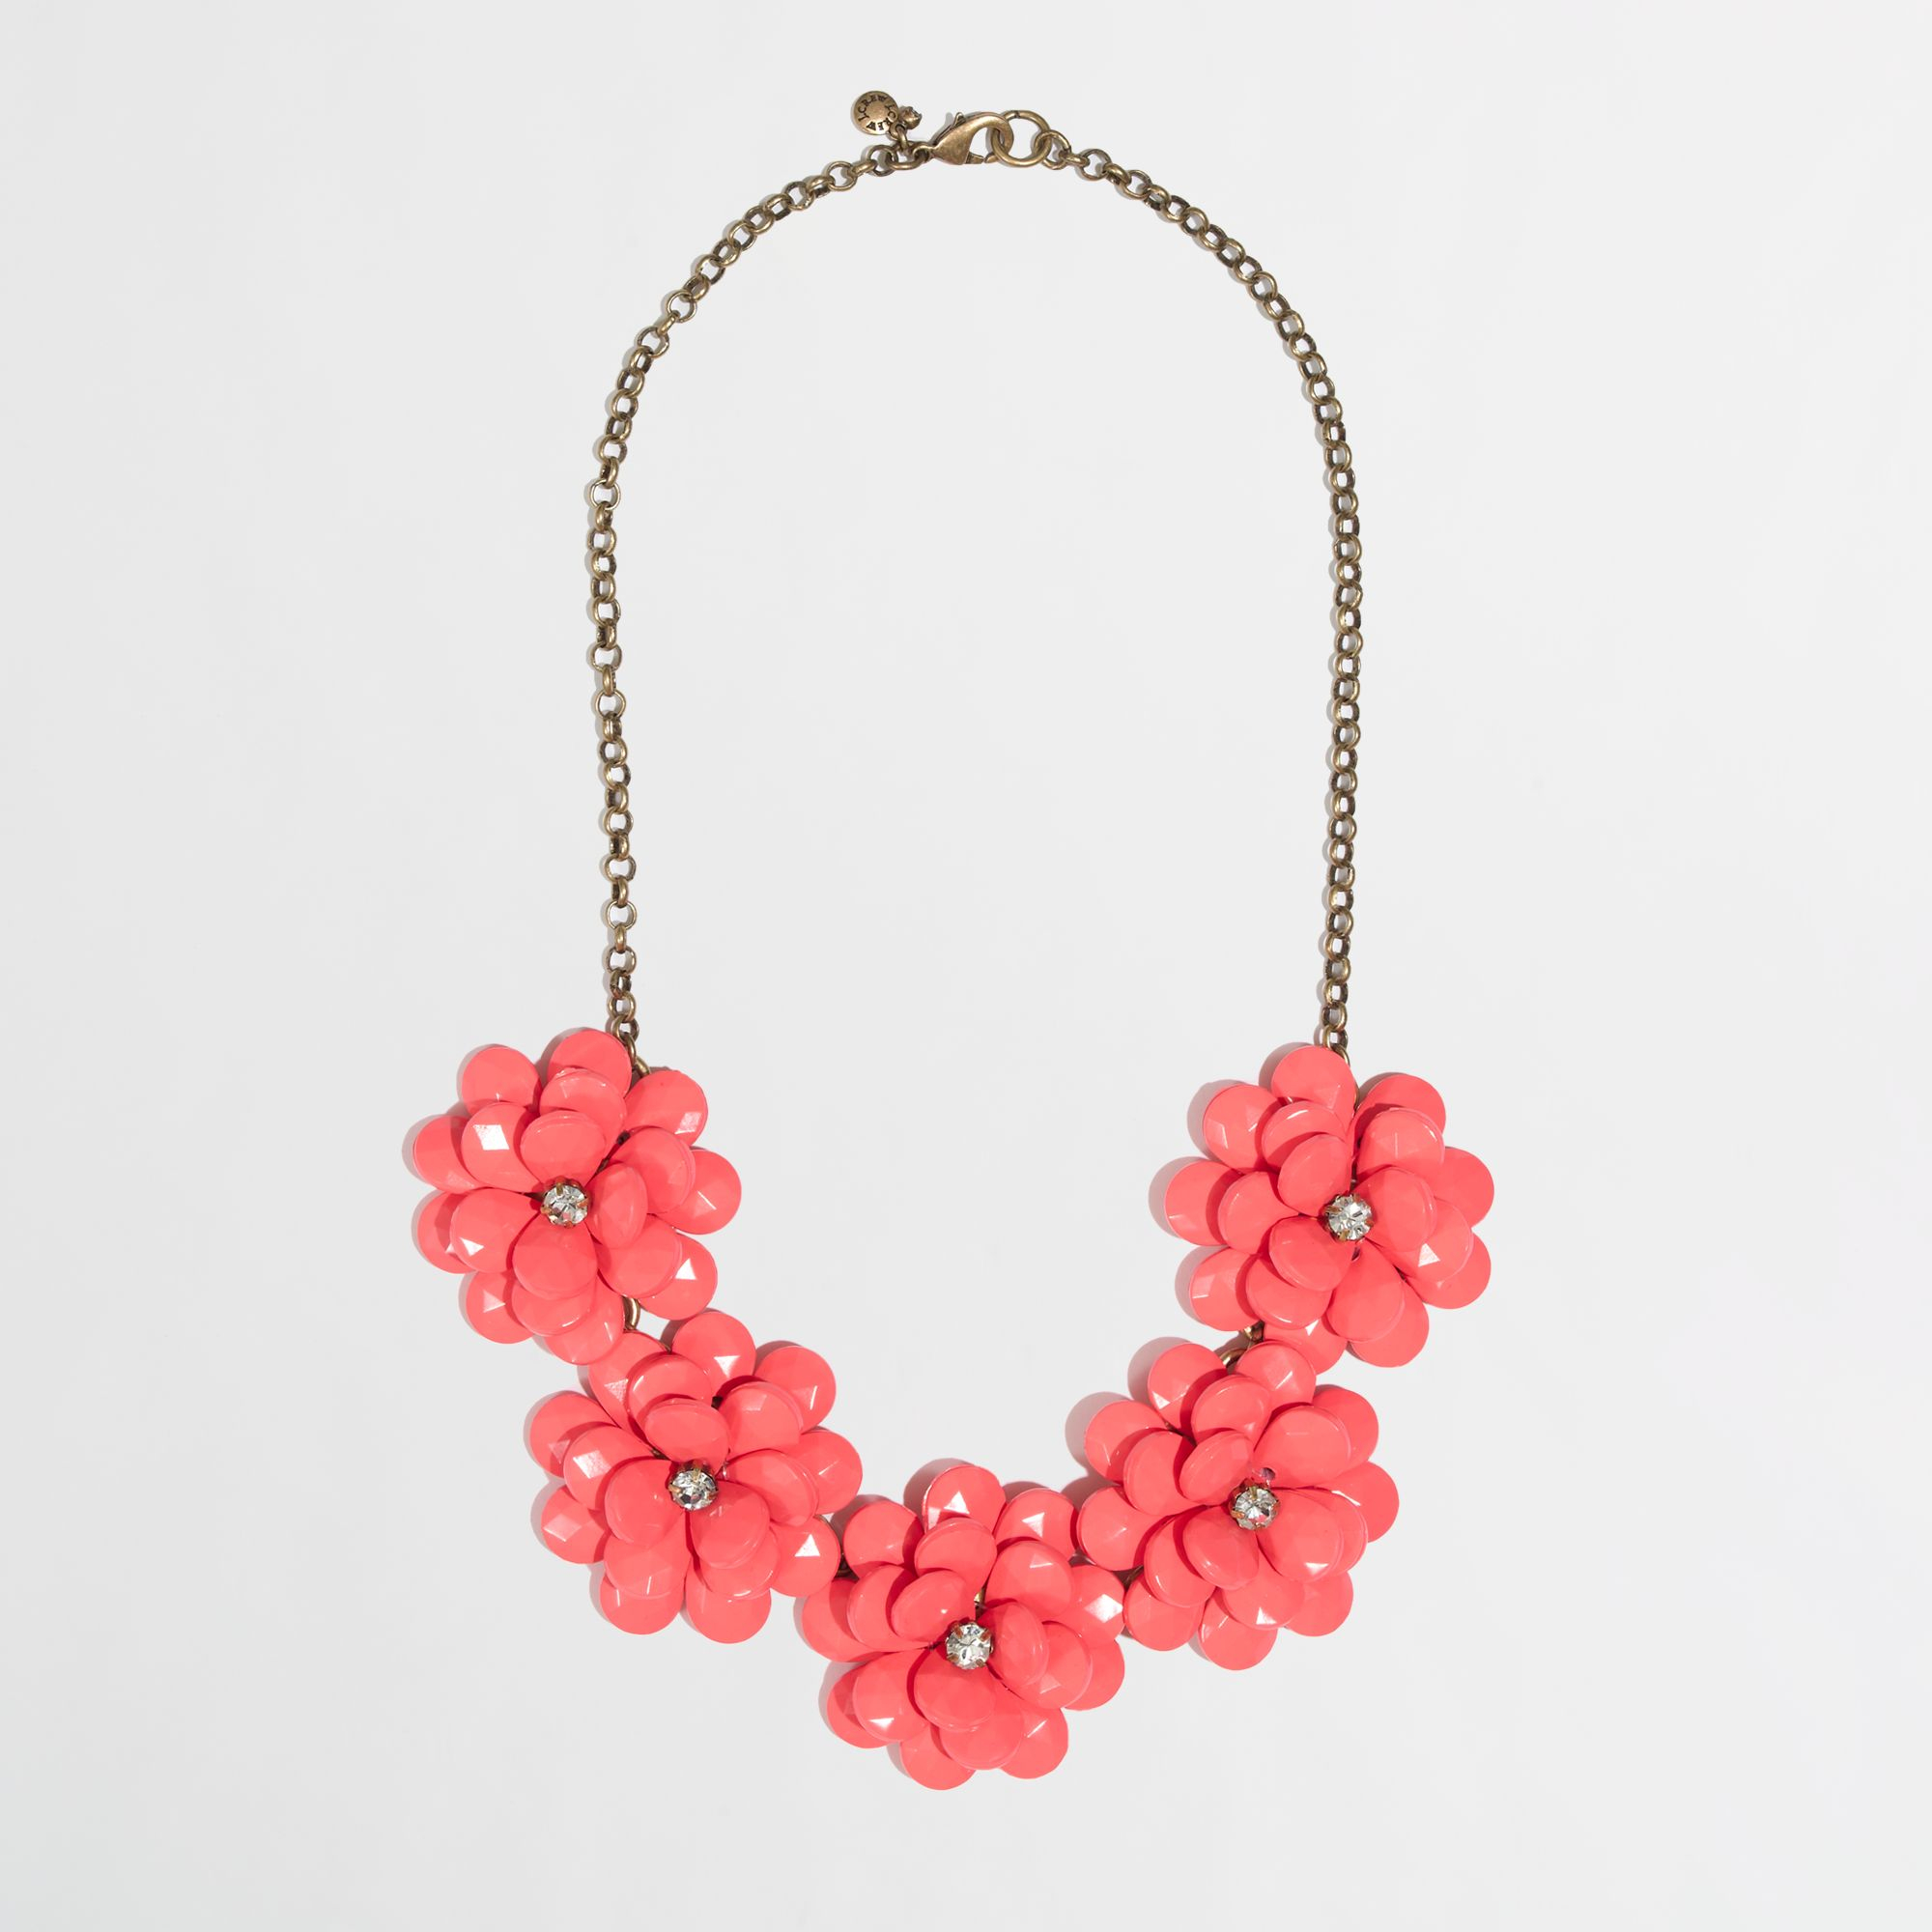 53018ddc0208b8 J.Crew Factory Crystal Floral Burst Necklace in Pink - Lyst